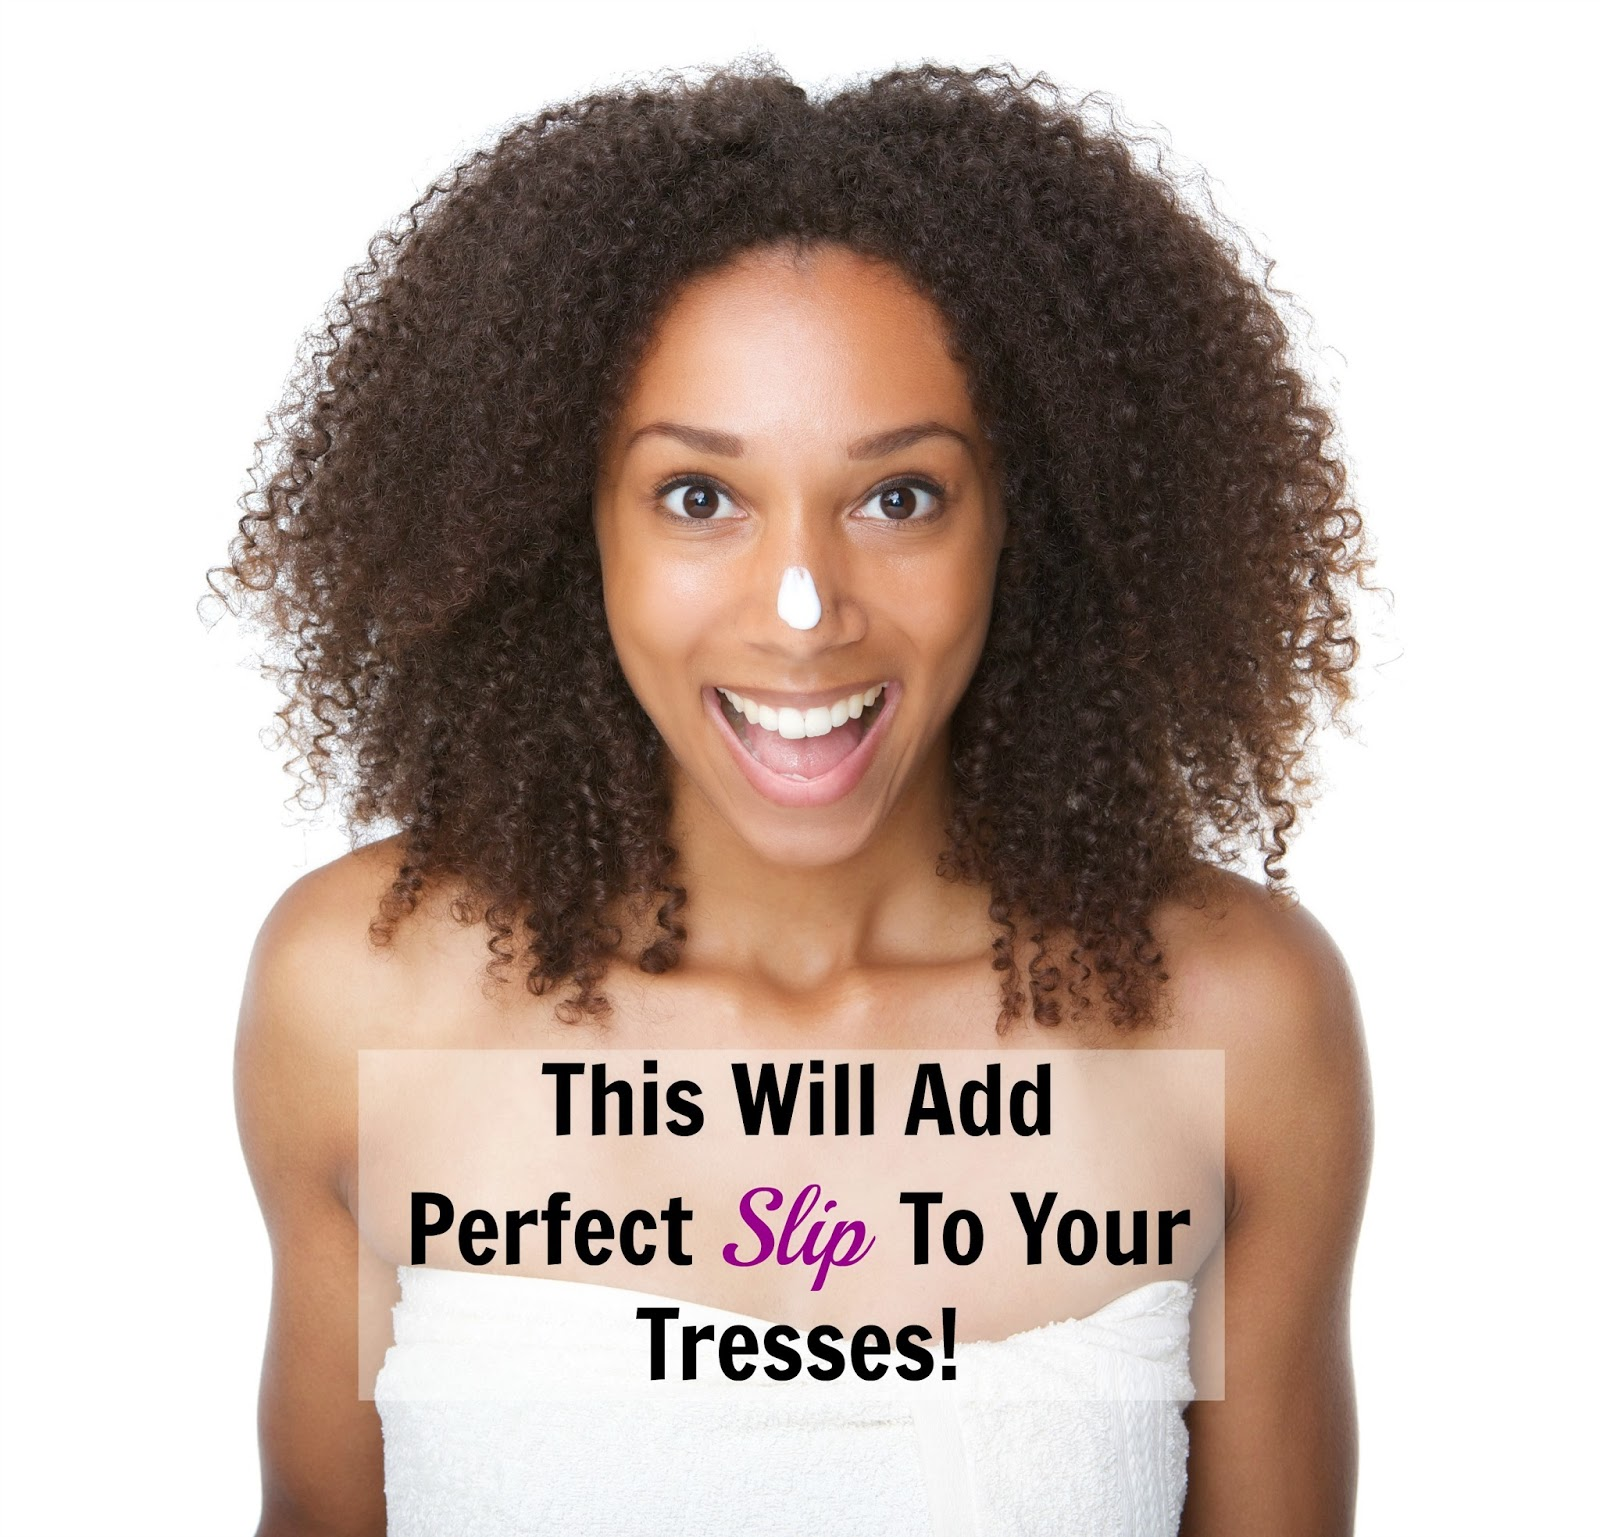 This Will Add Perfect Slip To Your Tresses!